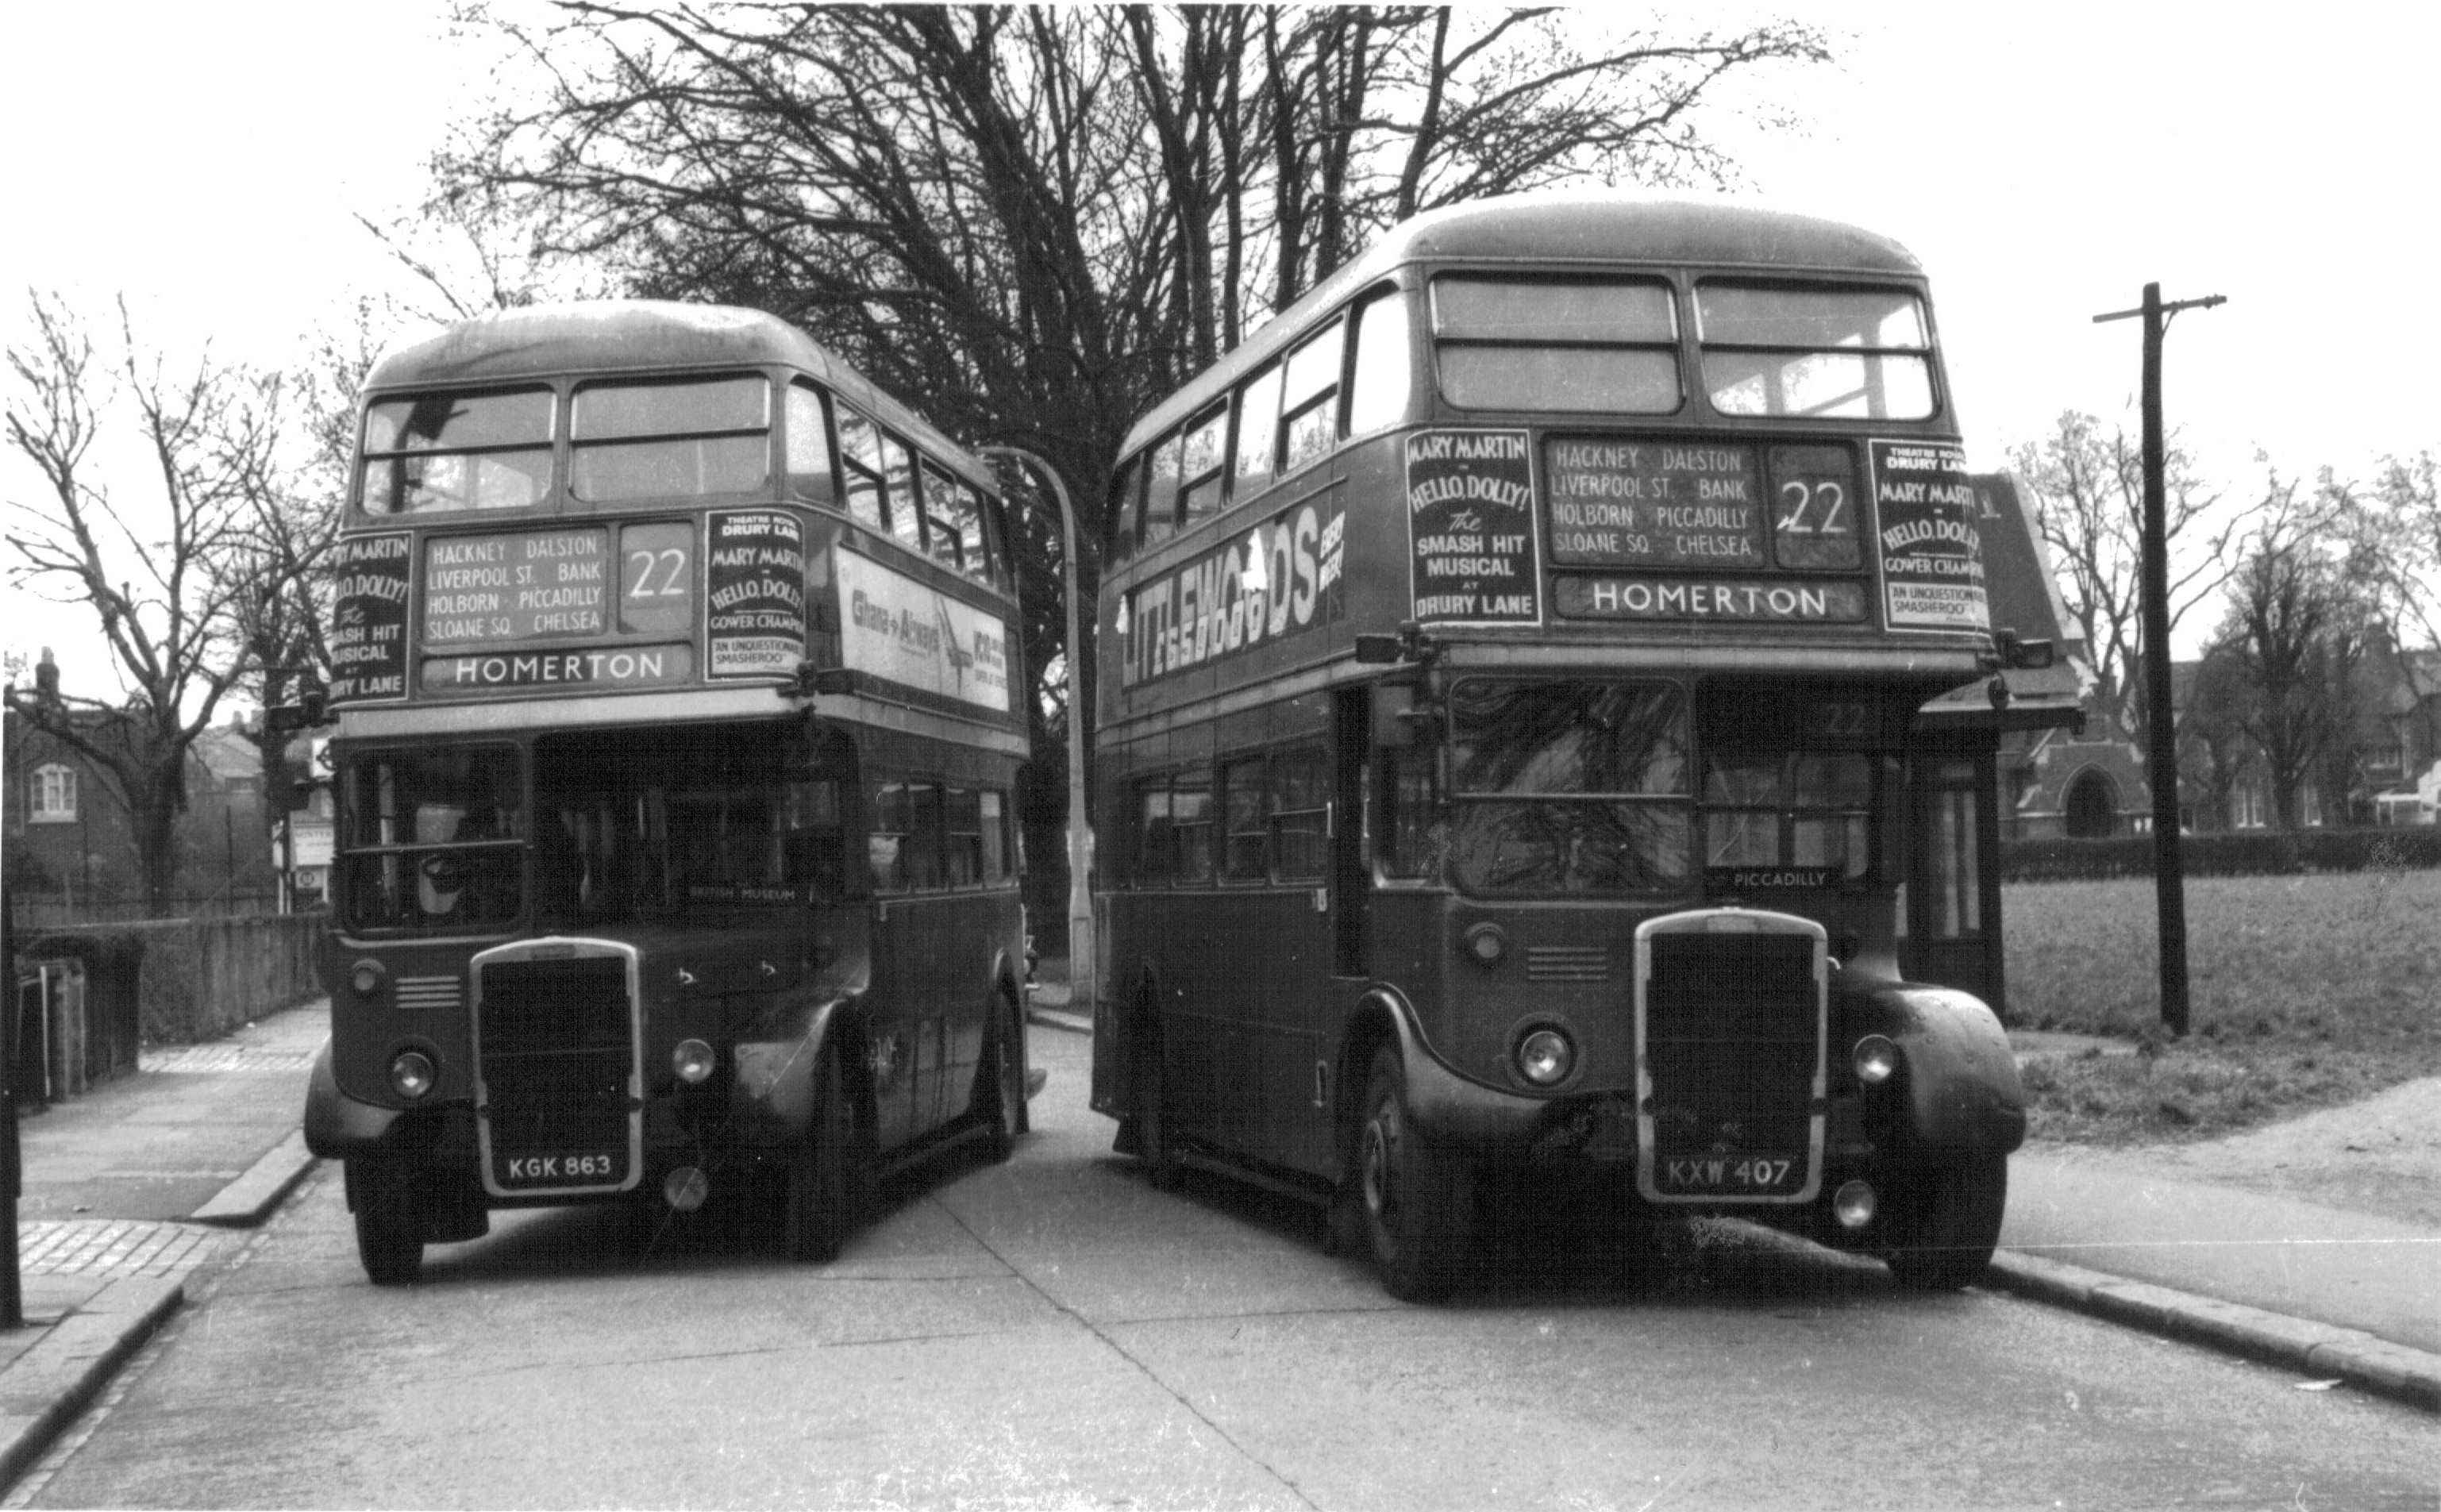 RTL199 and RTW307 at Putney Common © David Bosher